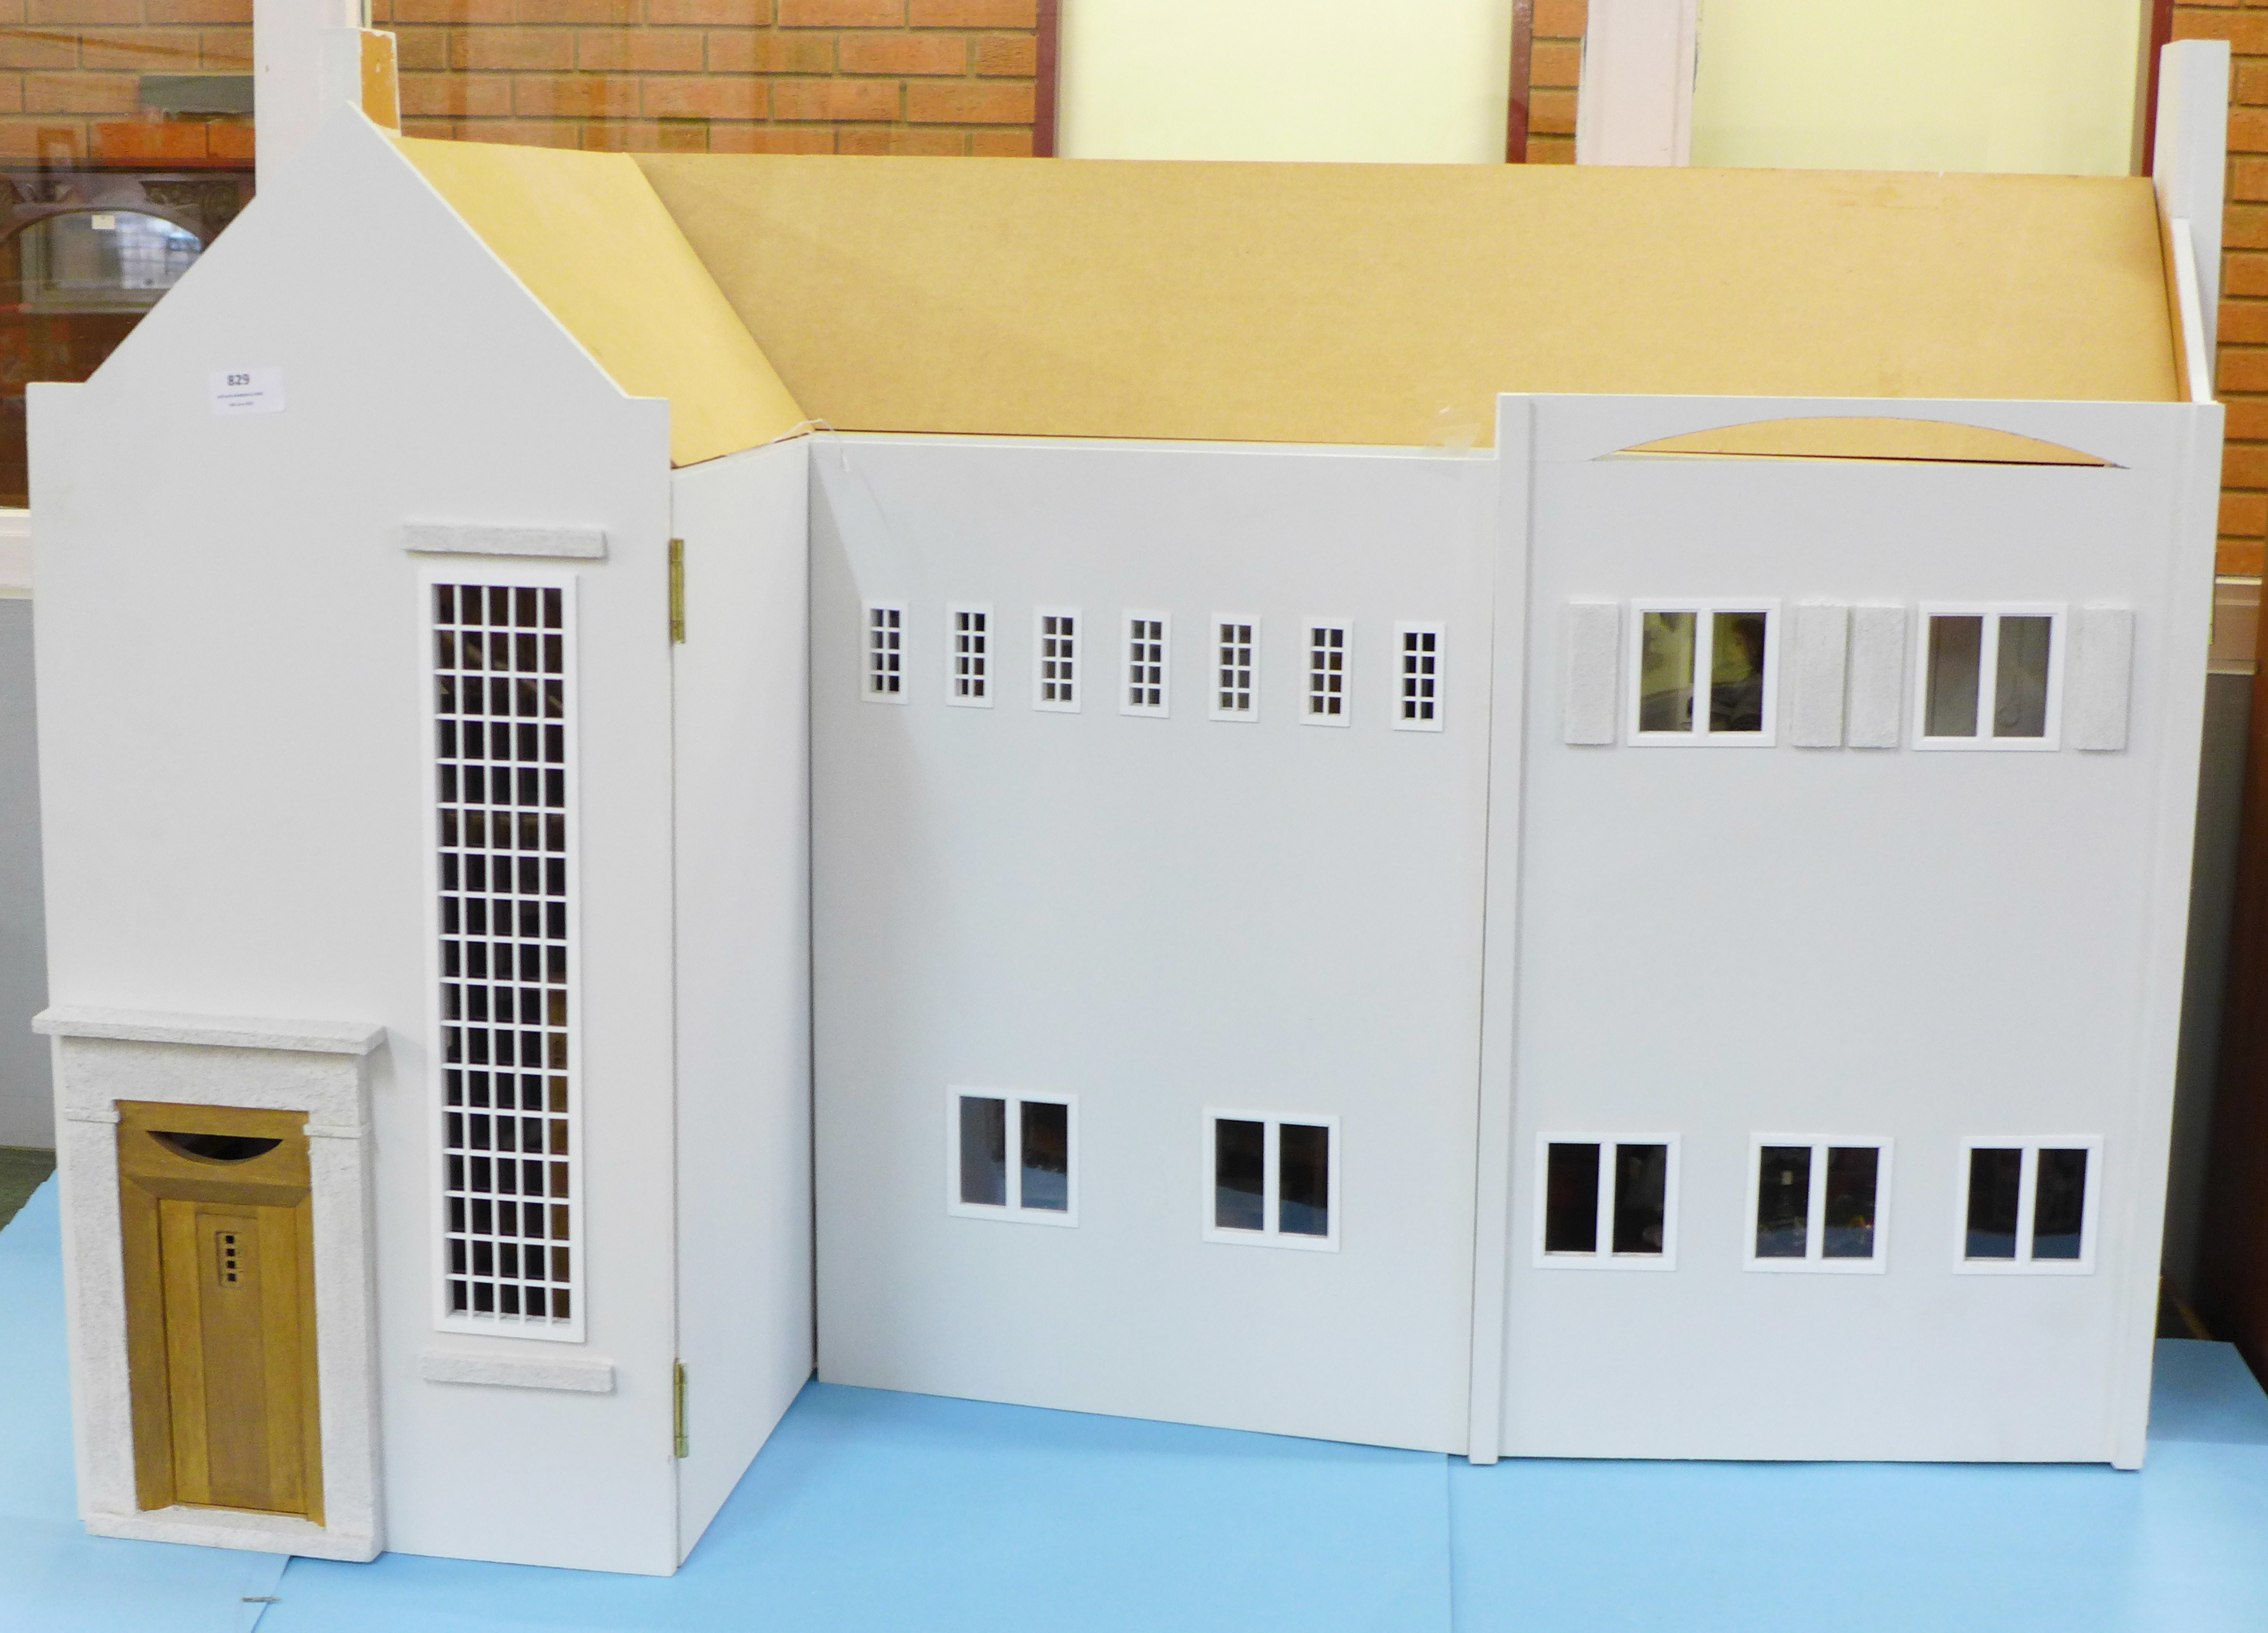 A Dolls House Emporiun Charles Rennie Makintosh-style Scottish House and Furniture. Assembled from a - Image 2 of 18